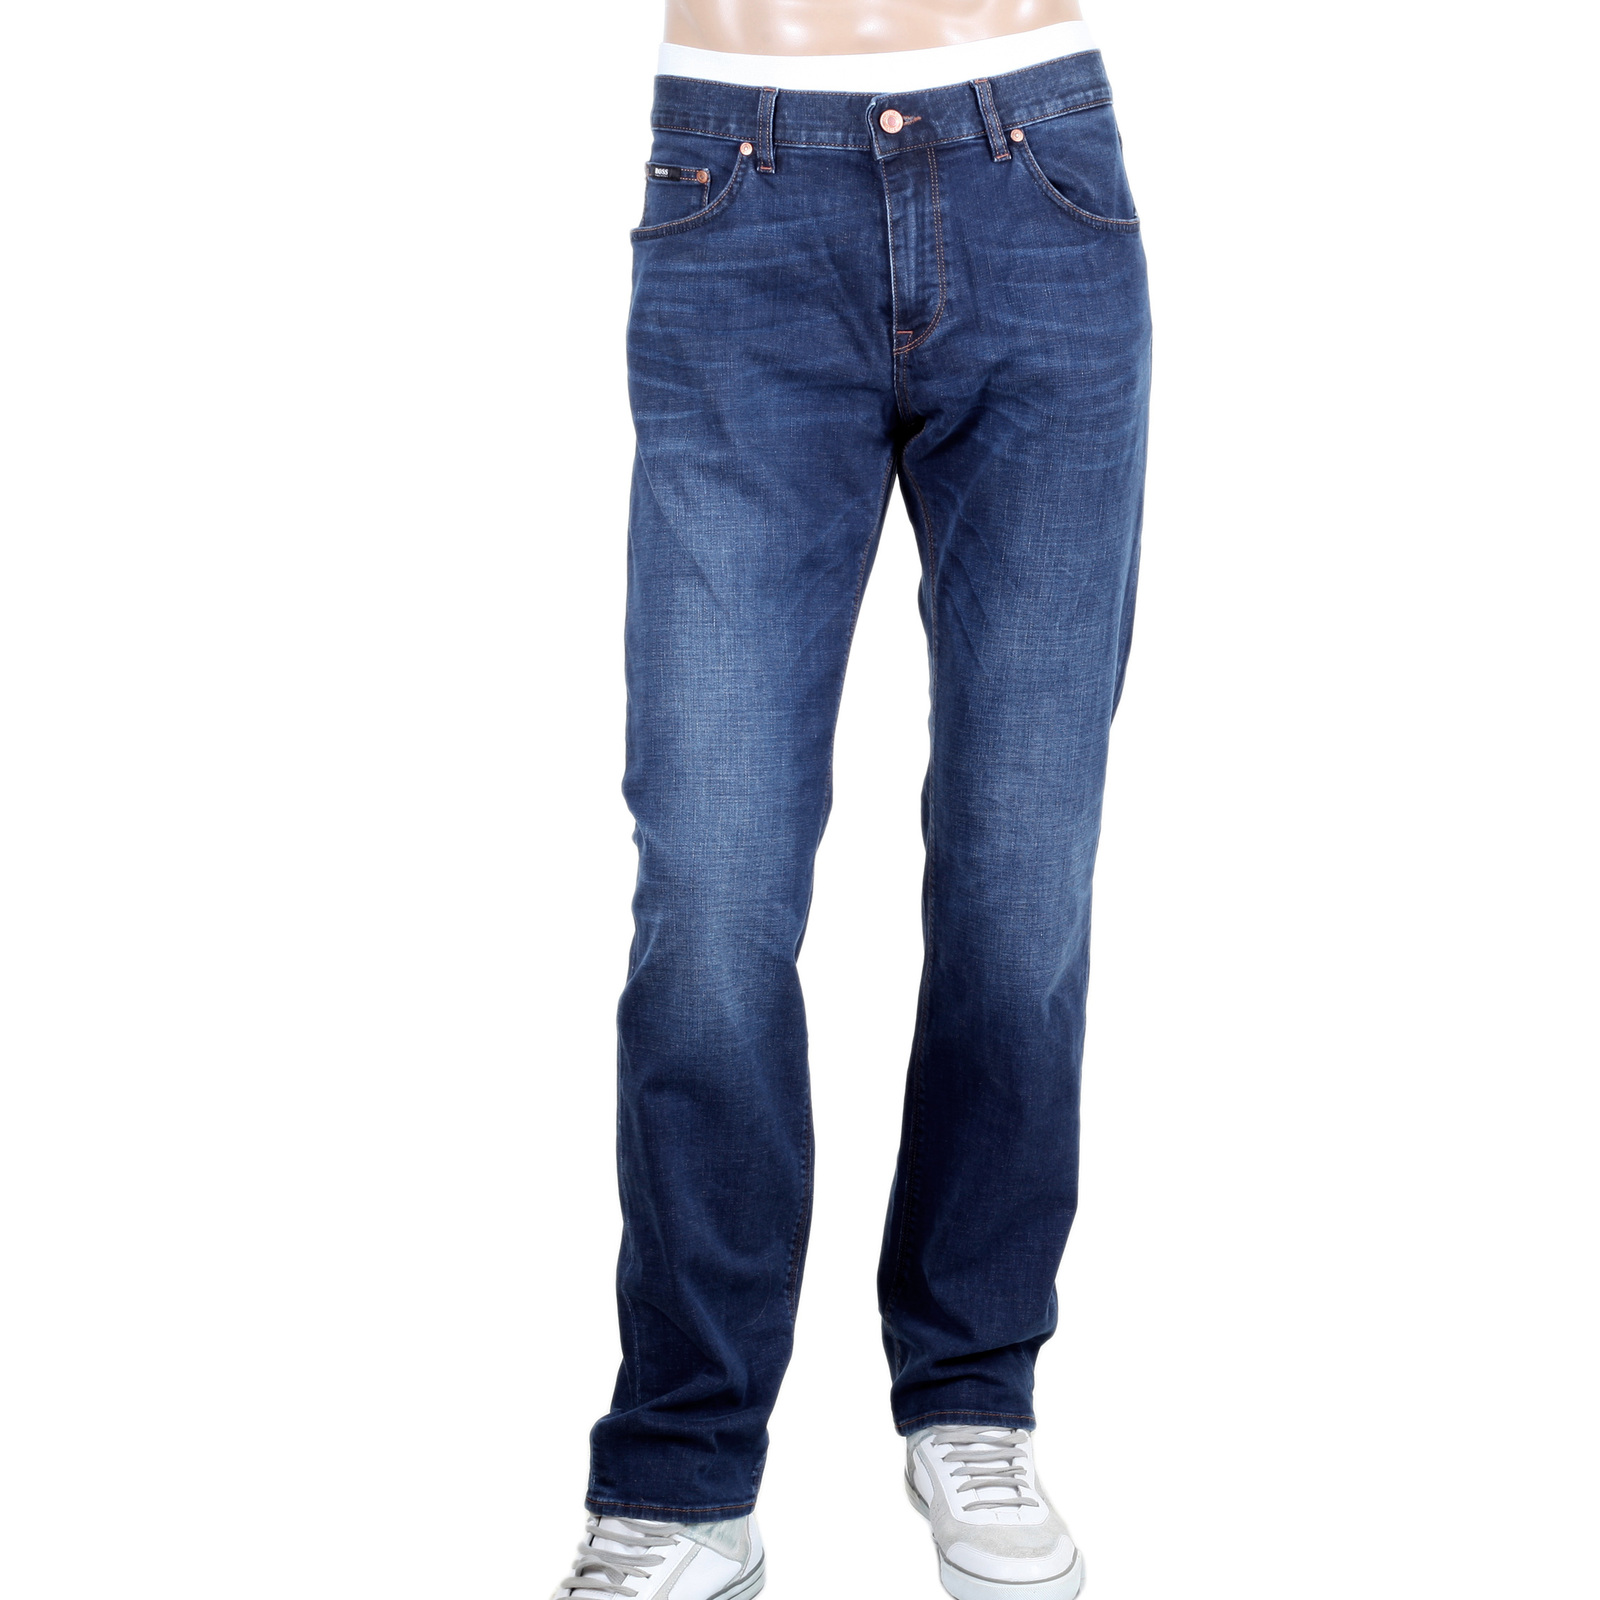 Regular Fit Stretch Denim Jeans for Men by Boss Black